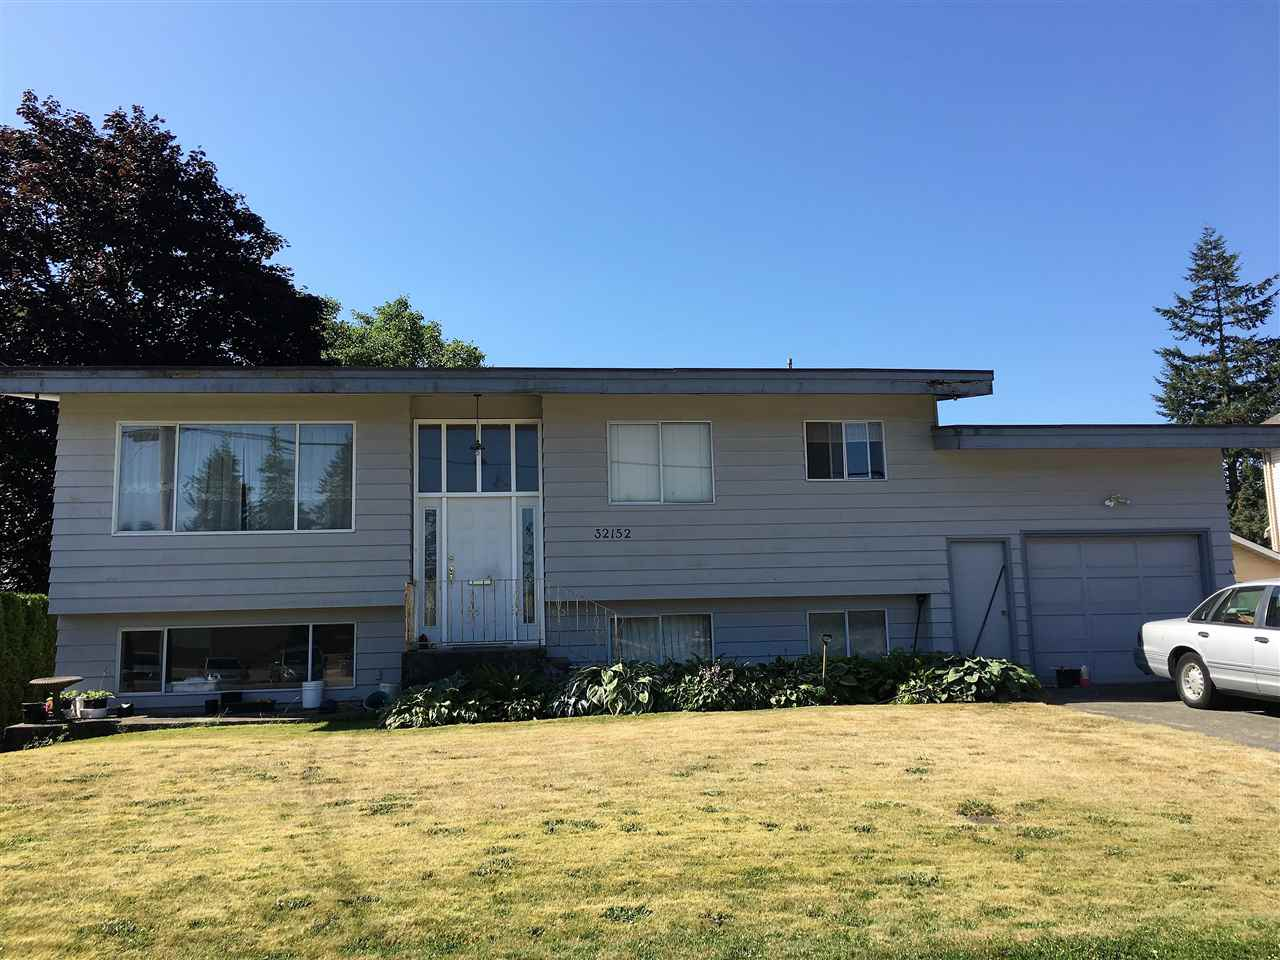 Main Photo: 32152 DORMICK Avenue in Abbotsford: Abbotsford West House for sale : MLS® # R2188128